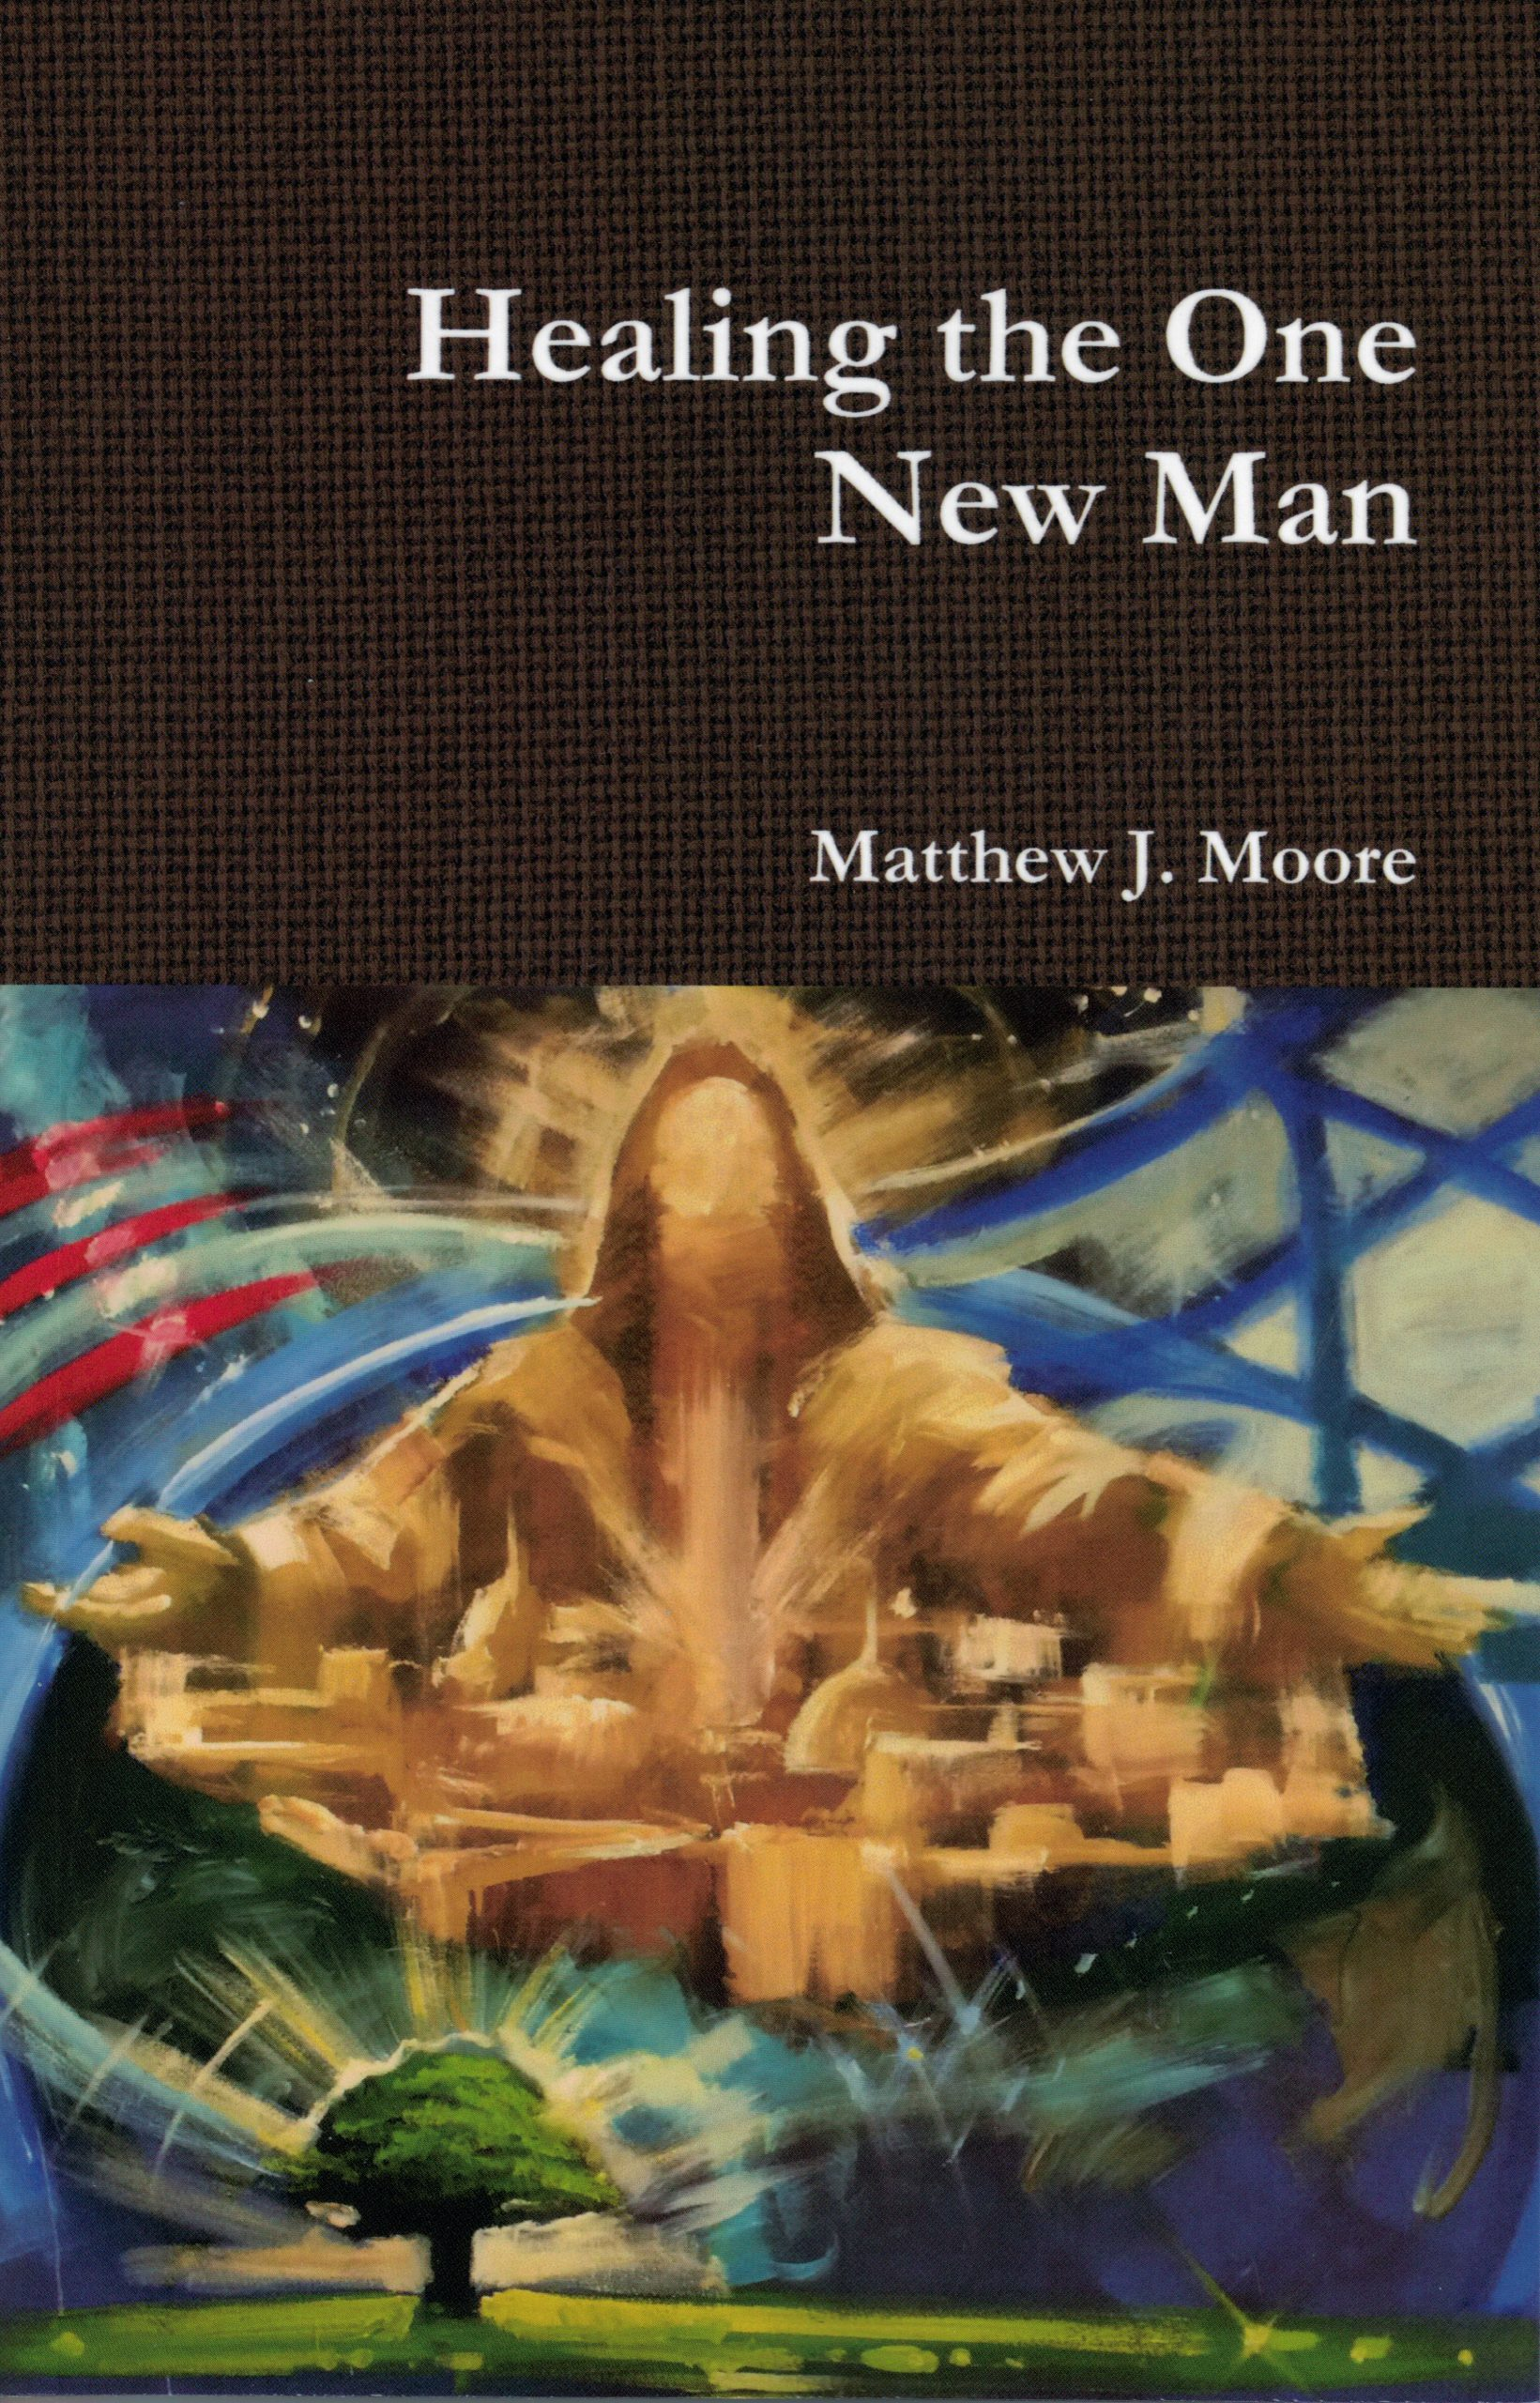 Healing the One New Man